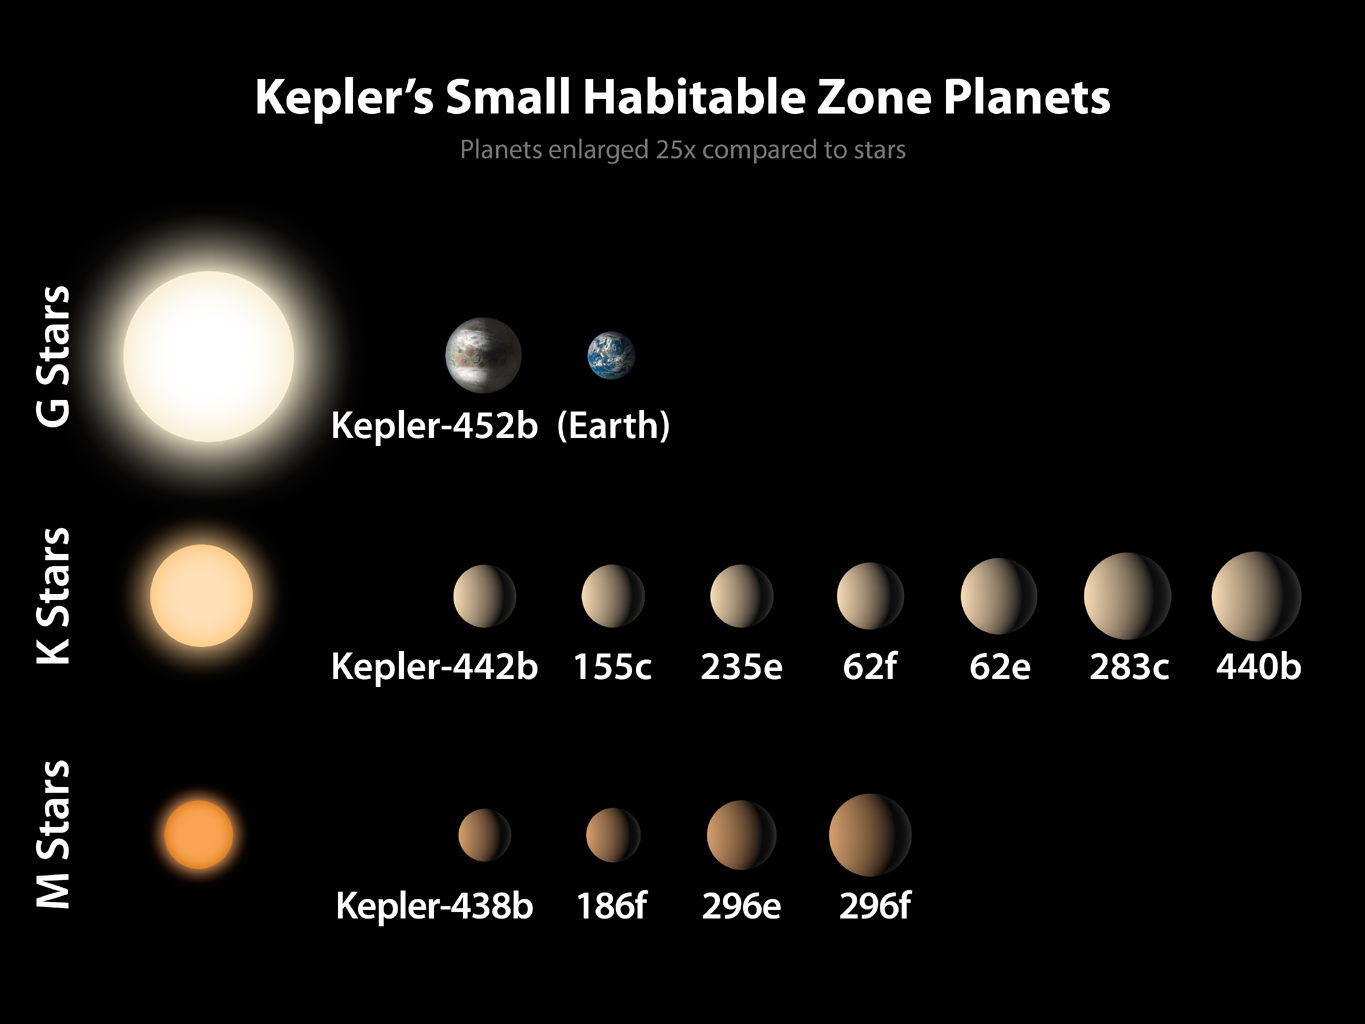 space images kepler s small habitable zone planets